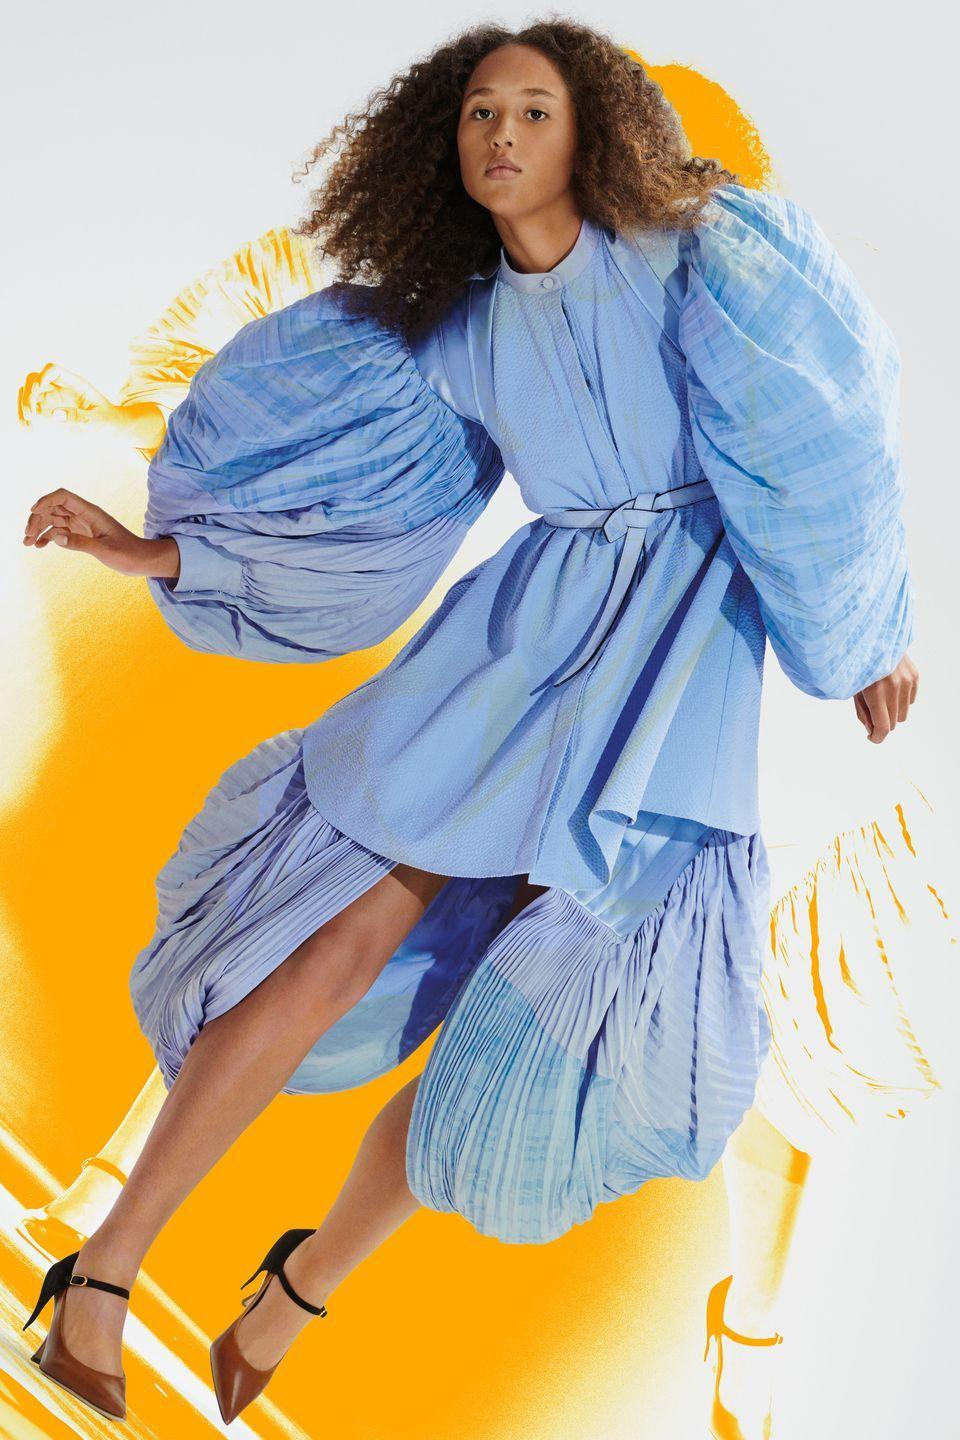 "<p>Loewe's Jonathan Anderson made showing remotely look like a creative endeavor with some true energy behind it. His resort 2021 collection came as a show-in-a-box containing paper dolls, and he evolved that concept for spring 2021 with what he termed a ""Show-on-the-Wall."" It was, effectively, a poster presentation, made in collaboration with M/M (Paris) and artist Anthea Hamilton, and was full of movement and whimsy. An artist's portfolio featuring giant fold-out posters of the looks was sent to editors, buyers, and friends of the brand. The special delivery also included a DIY set: a roll of wallpaper designed by the artist, wallpaper borders, wallpaper glue, a brush, and scissors. There was even a beetroot scent disc and a soundtrack by way of choral sheet music by Thomas Tallis to keep the experiential aspect of runway presentations alive and well via an entirely new approach. The clothes themselves spoke volumes, with an emphasis on the theatrical and sculptural. There were balloon sleeves, crinoline skirts, and other bold shapes sending the message that even though this is a moment where we're hiding out, we can still be as big and as bold as we want to be. —<em>Kerry Pieri</em></p>"